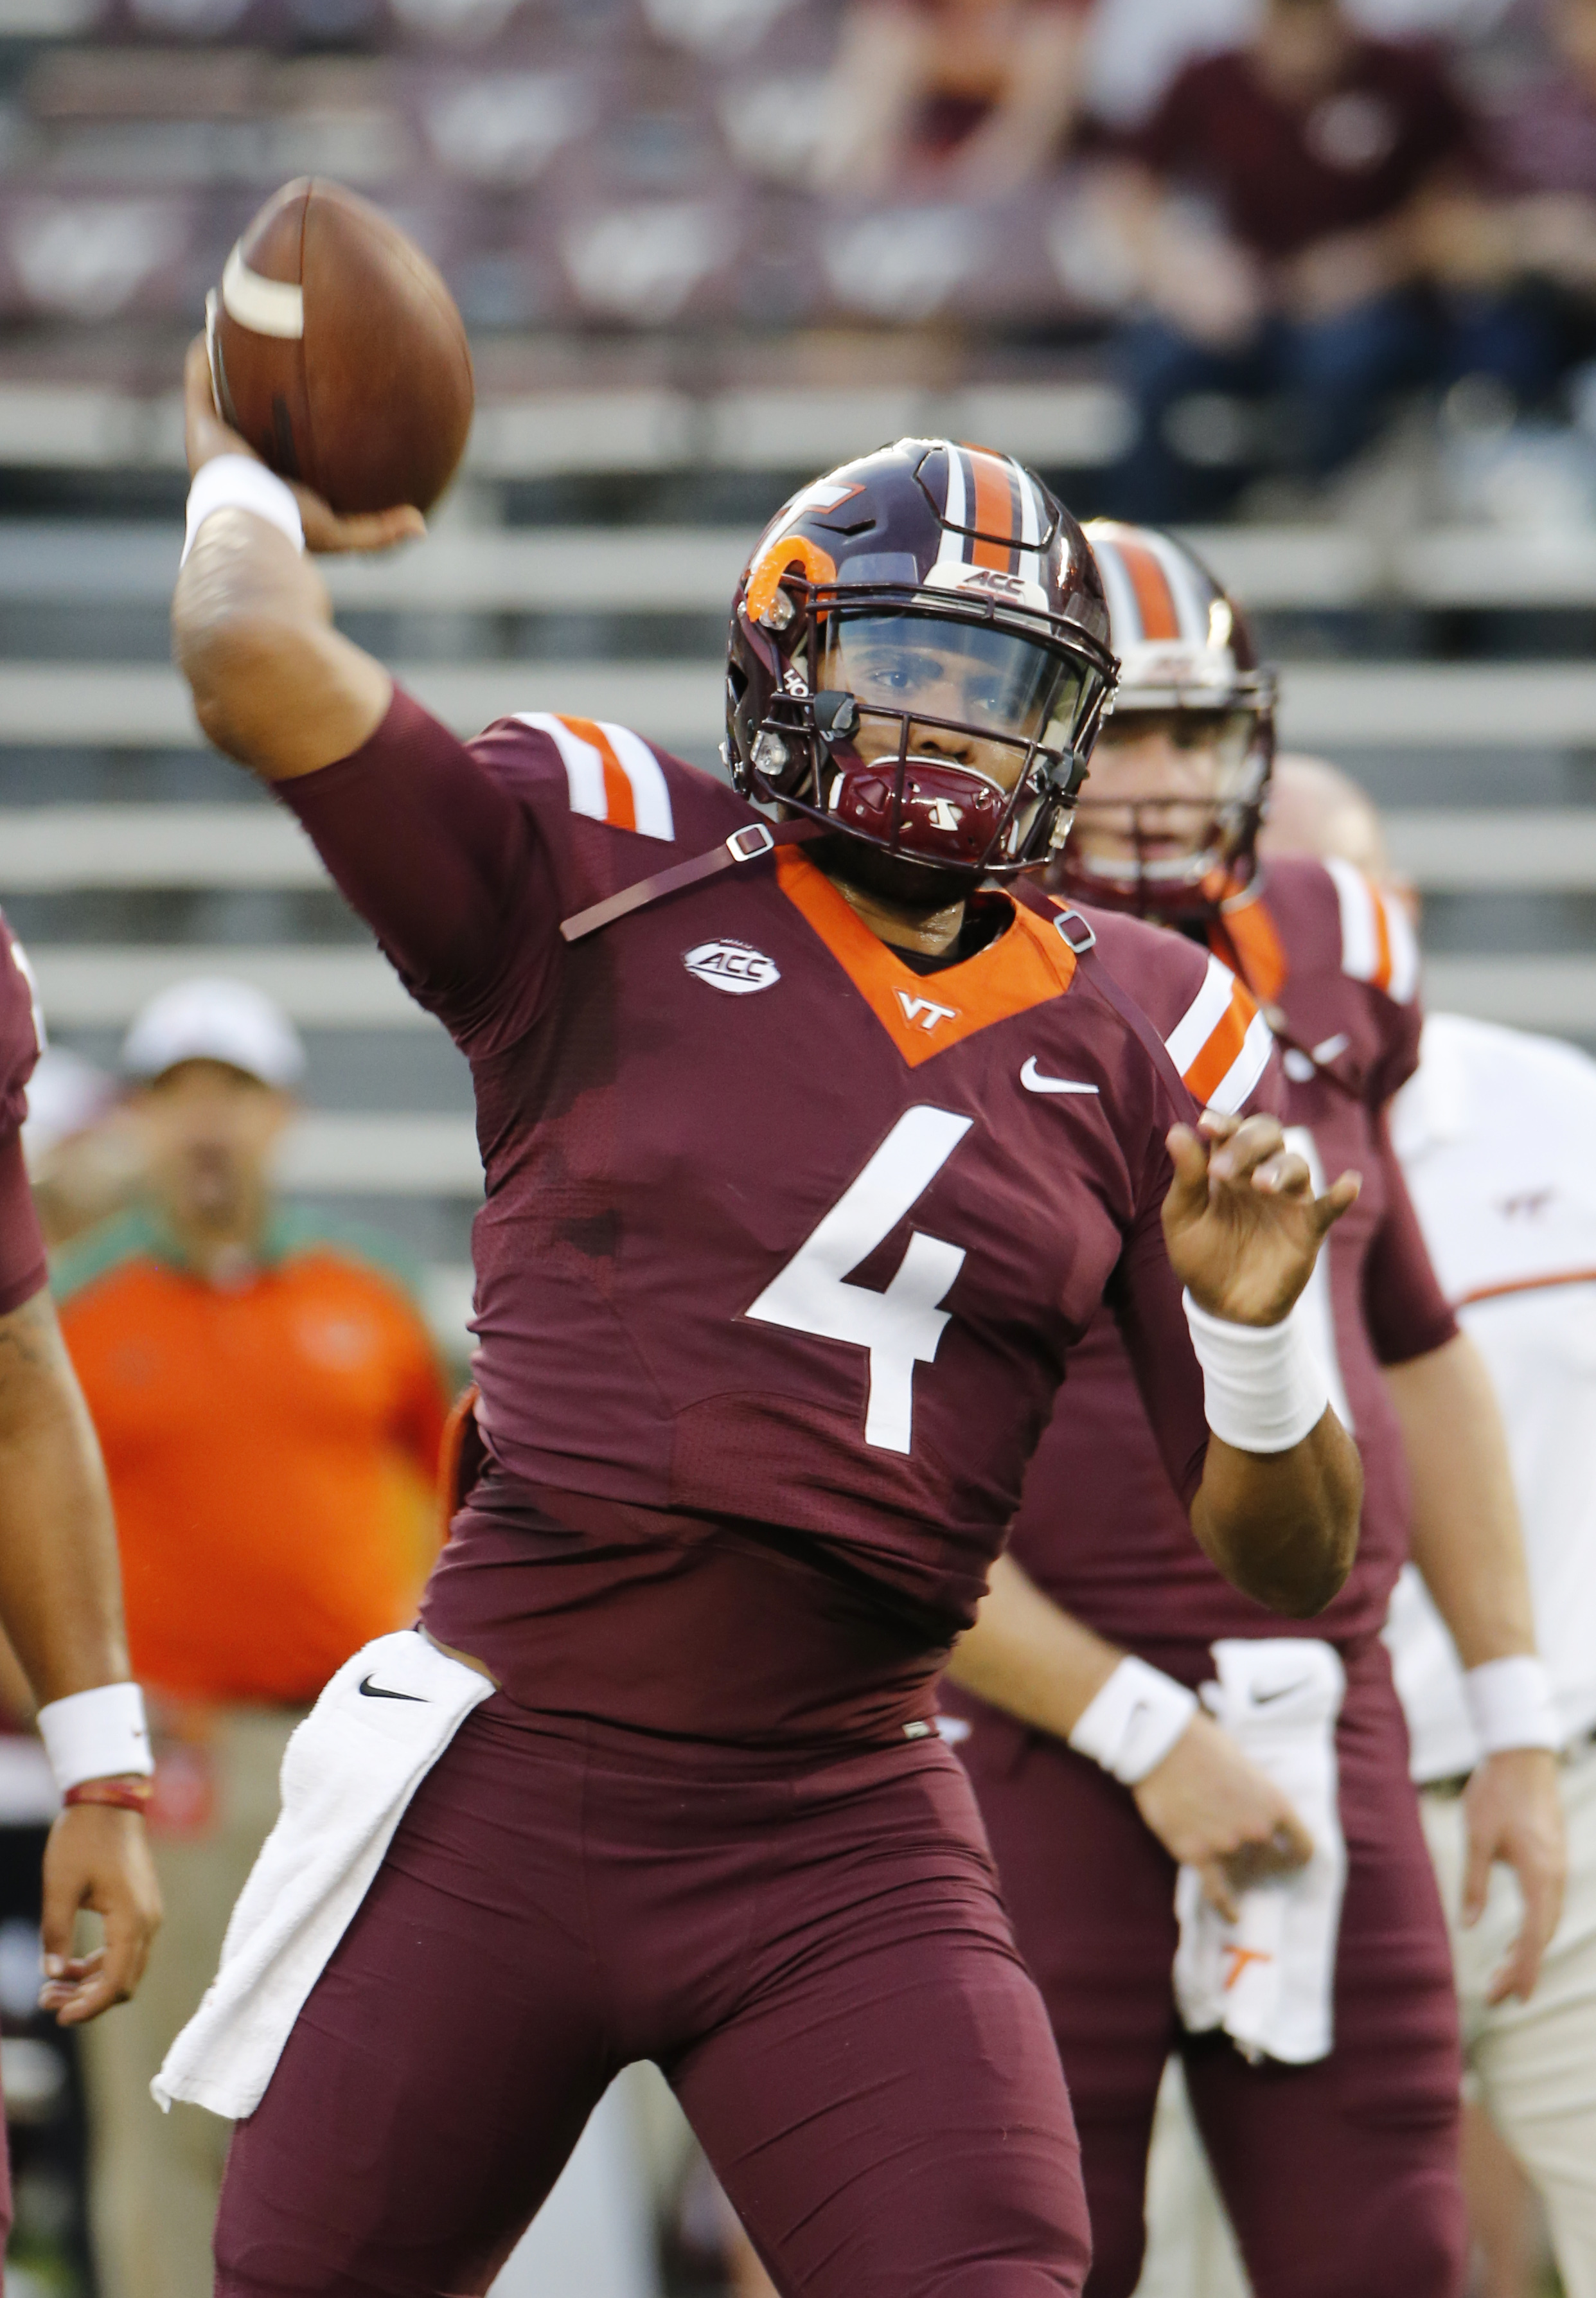 FILE - In this Oct. 20, 2016, file photo, Virginia Tech quarterback Jerod Evans (4) tosses a pass prior to the start of the Miami-Virginia Tech NCAA college football game at Lane stadium in Blacksburg, Va. Virginia Tech has its destiny in its hands if it